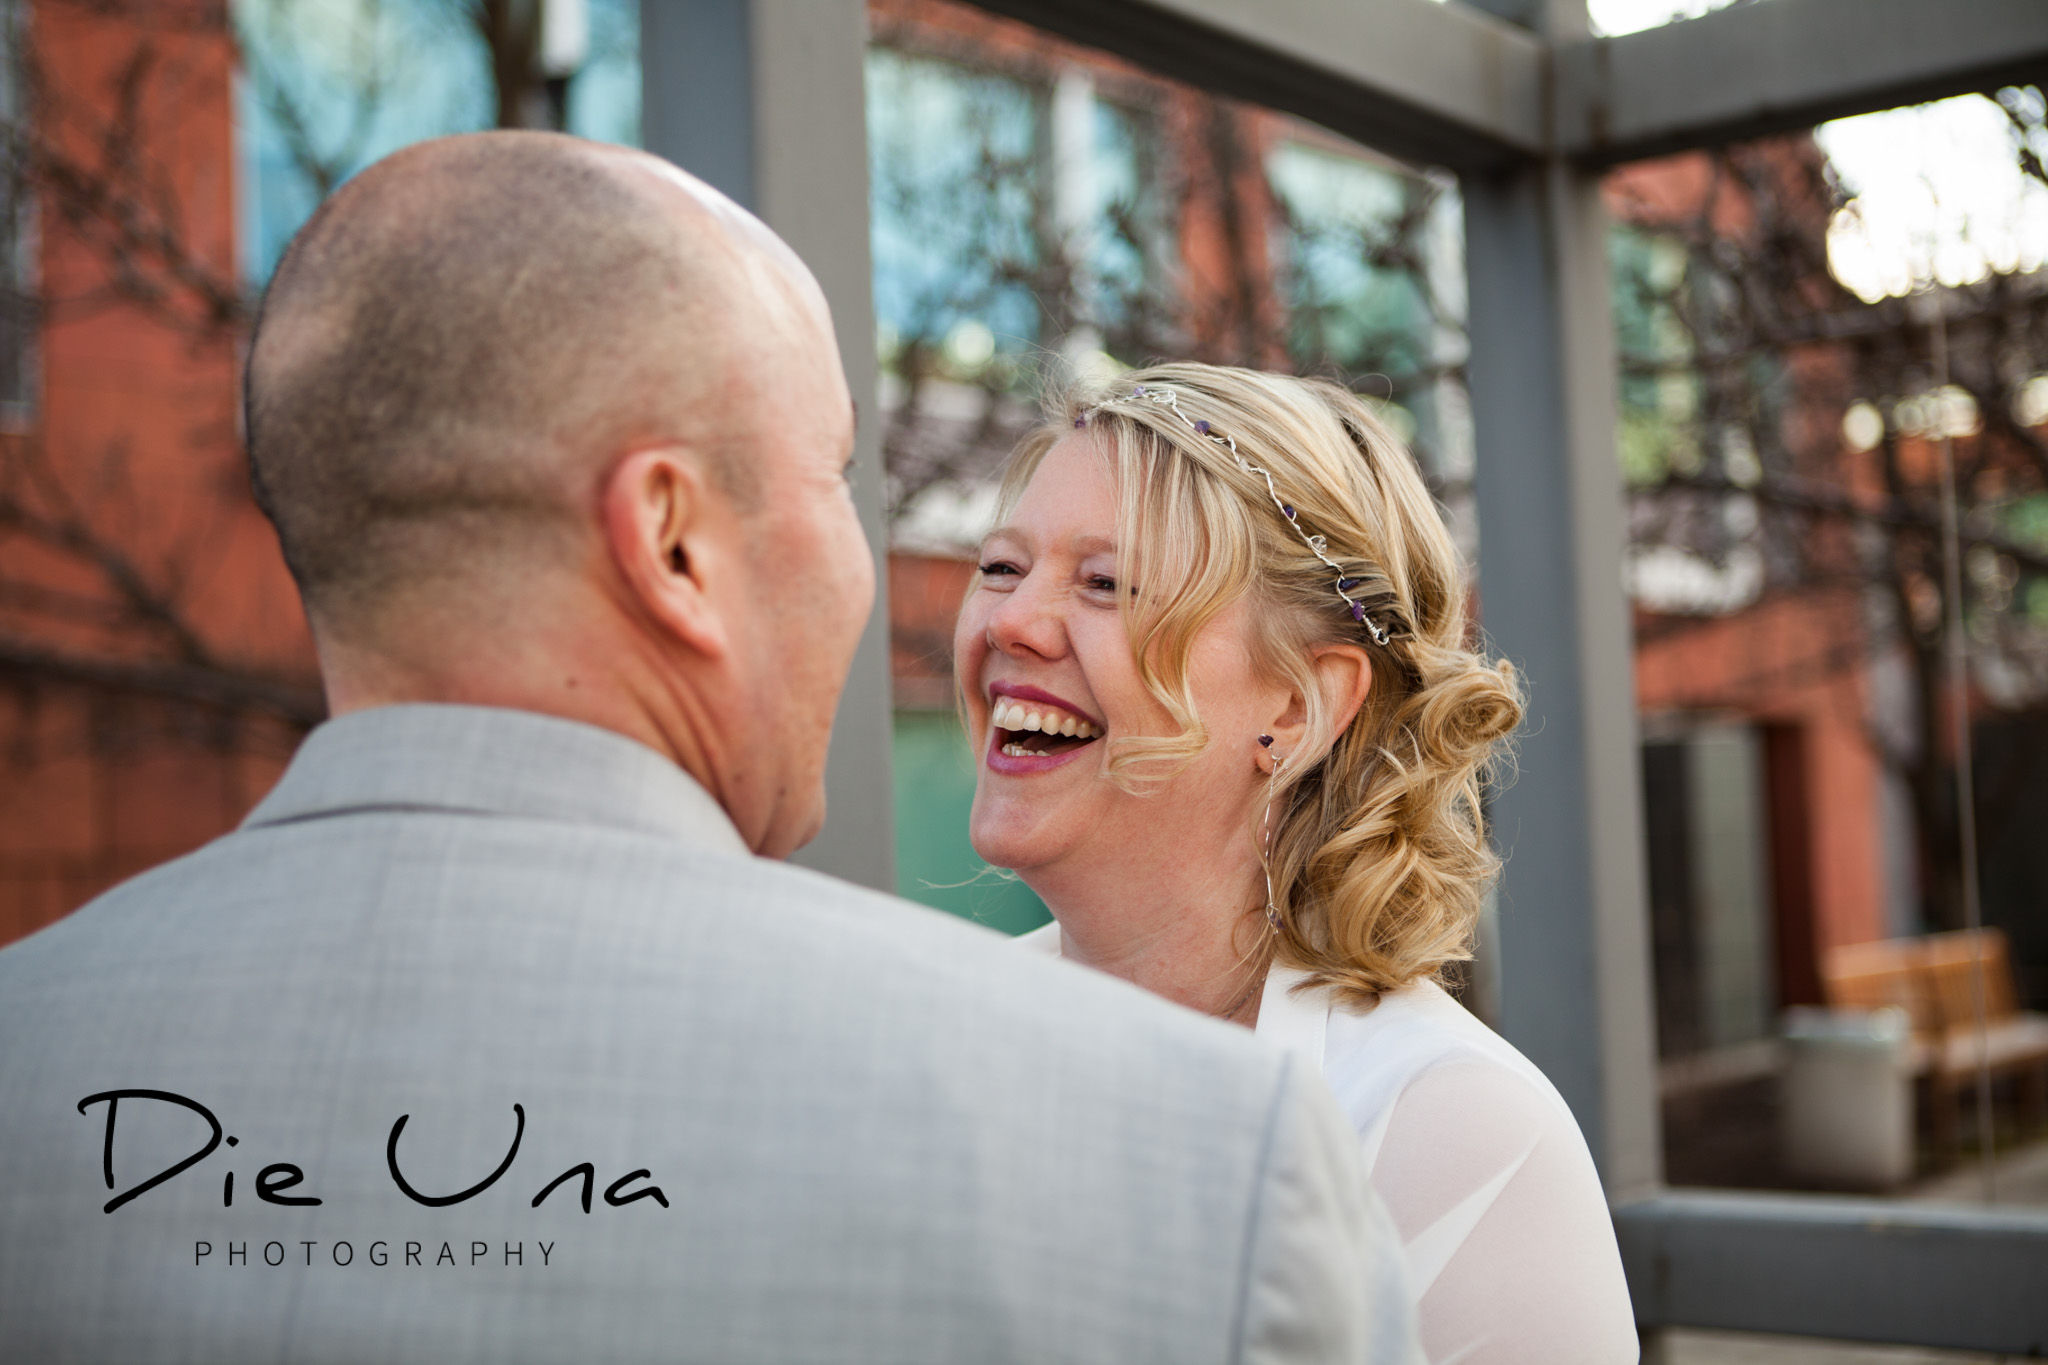 outside at Kitchener city hall with wedding couple